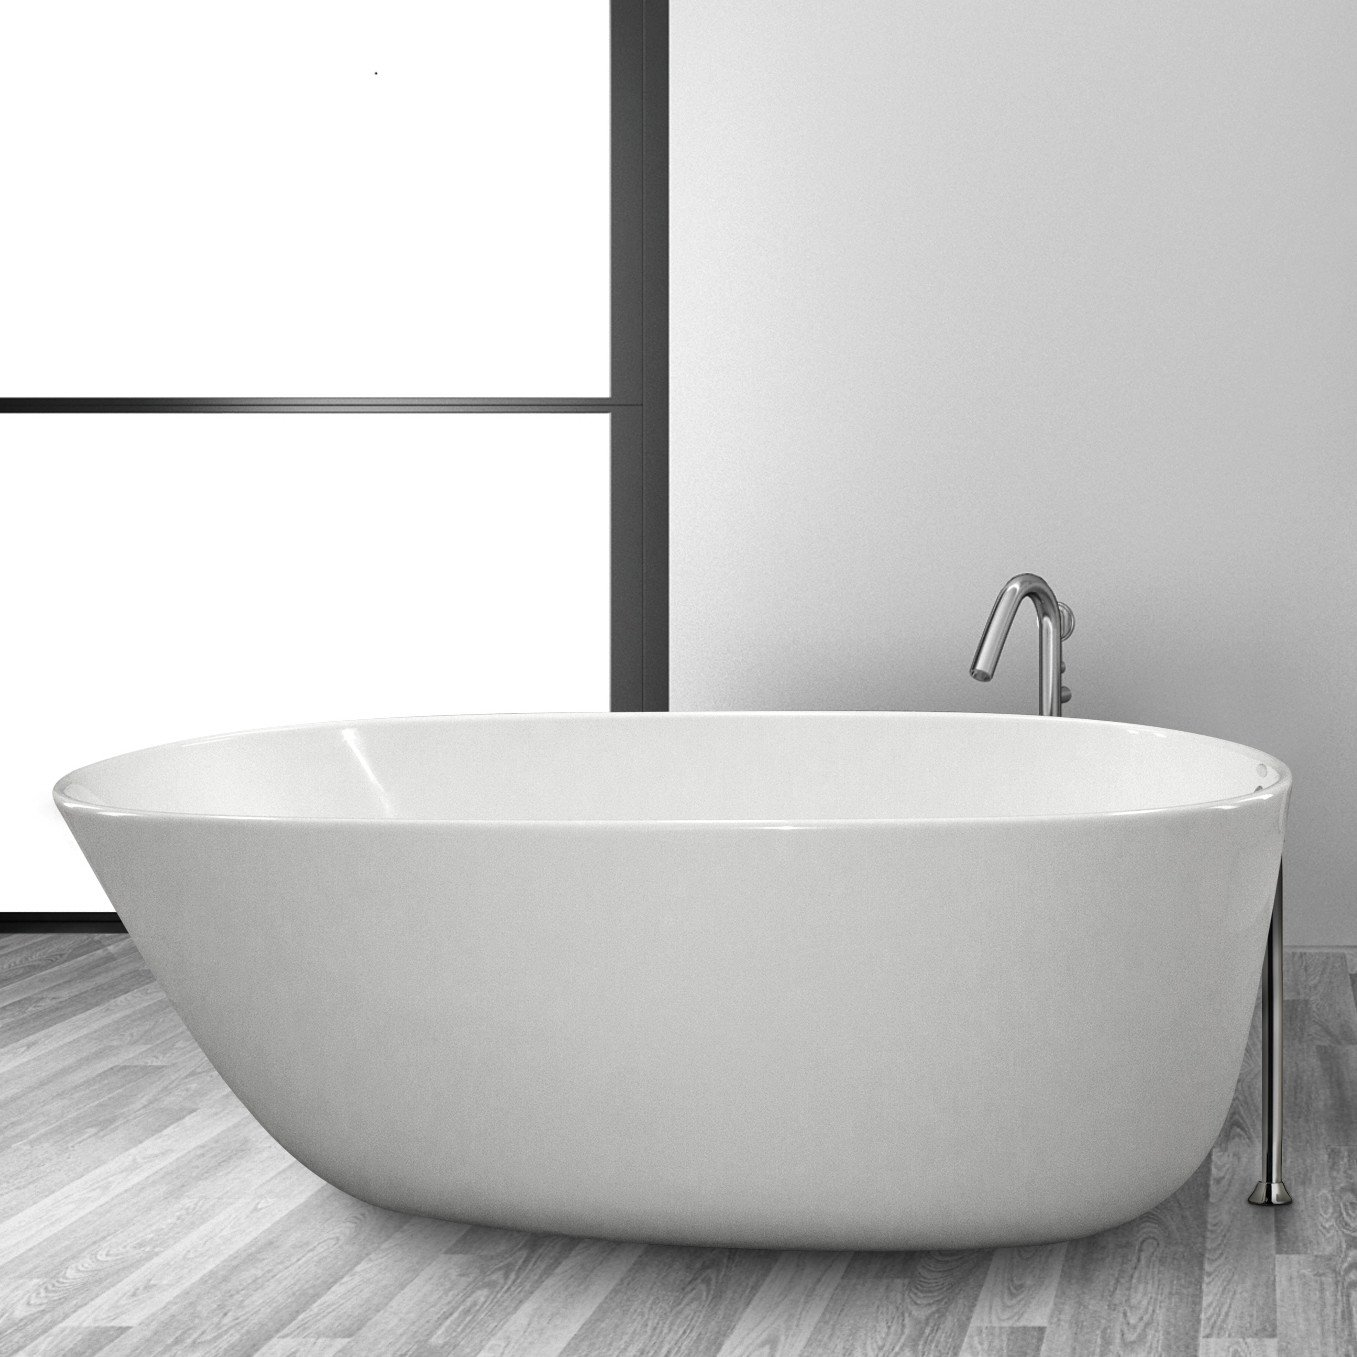 Hydro Systems DLA5830STO Daniela 5830 Freestanding Tub     Amazon com. Free Standing Tub Canada. Home Design Ideas